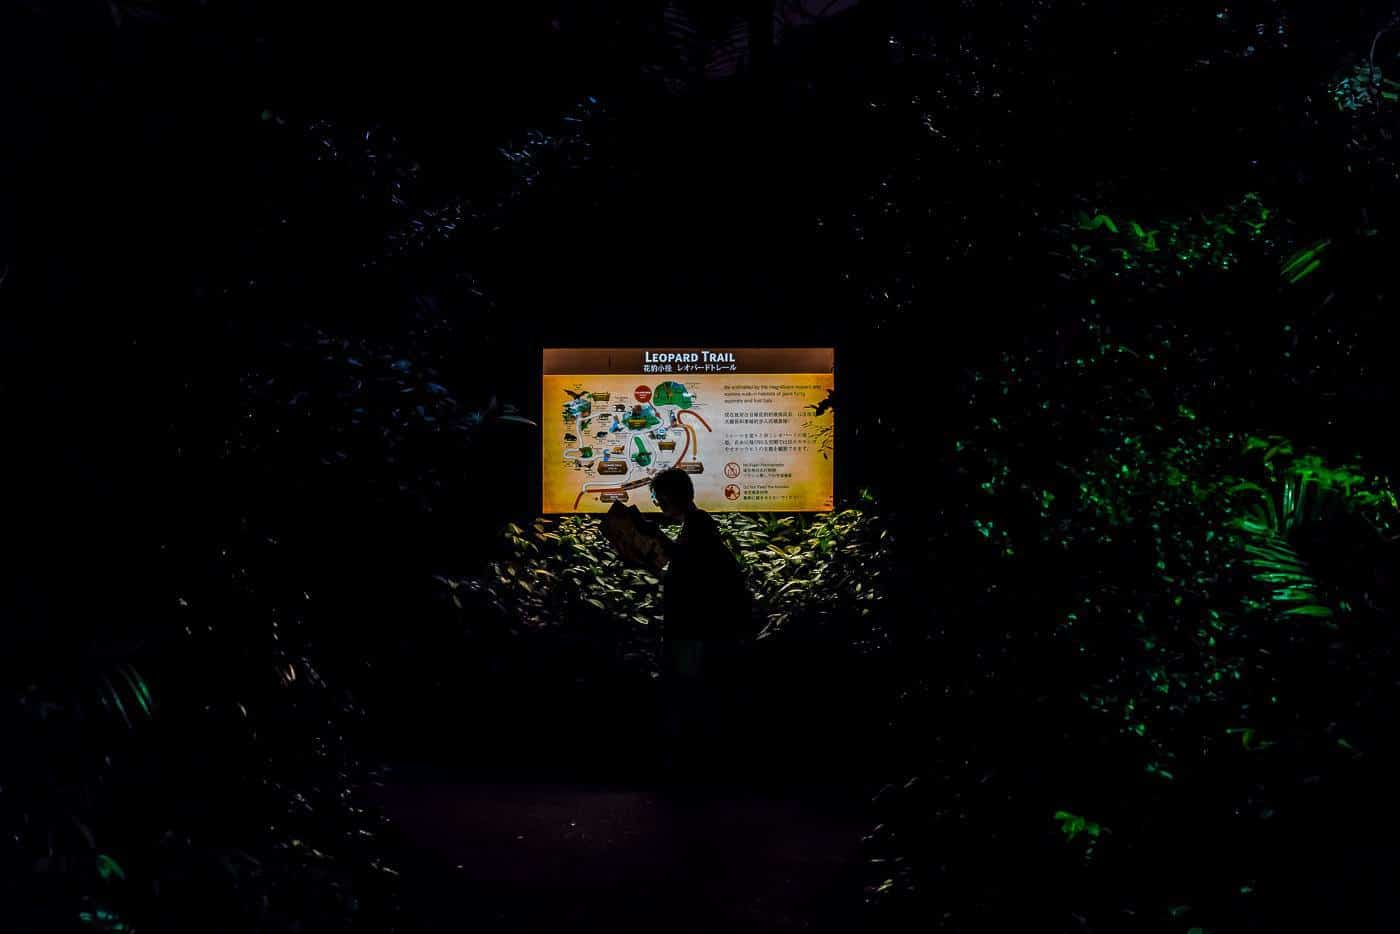 A man scans his map at Singapore Zoo night safari